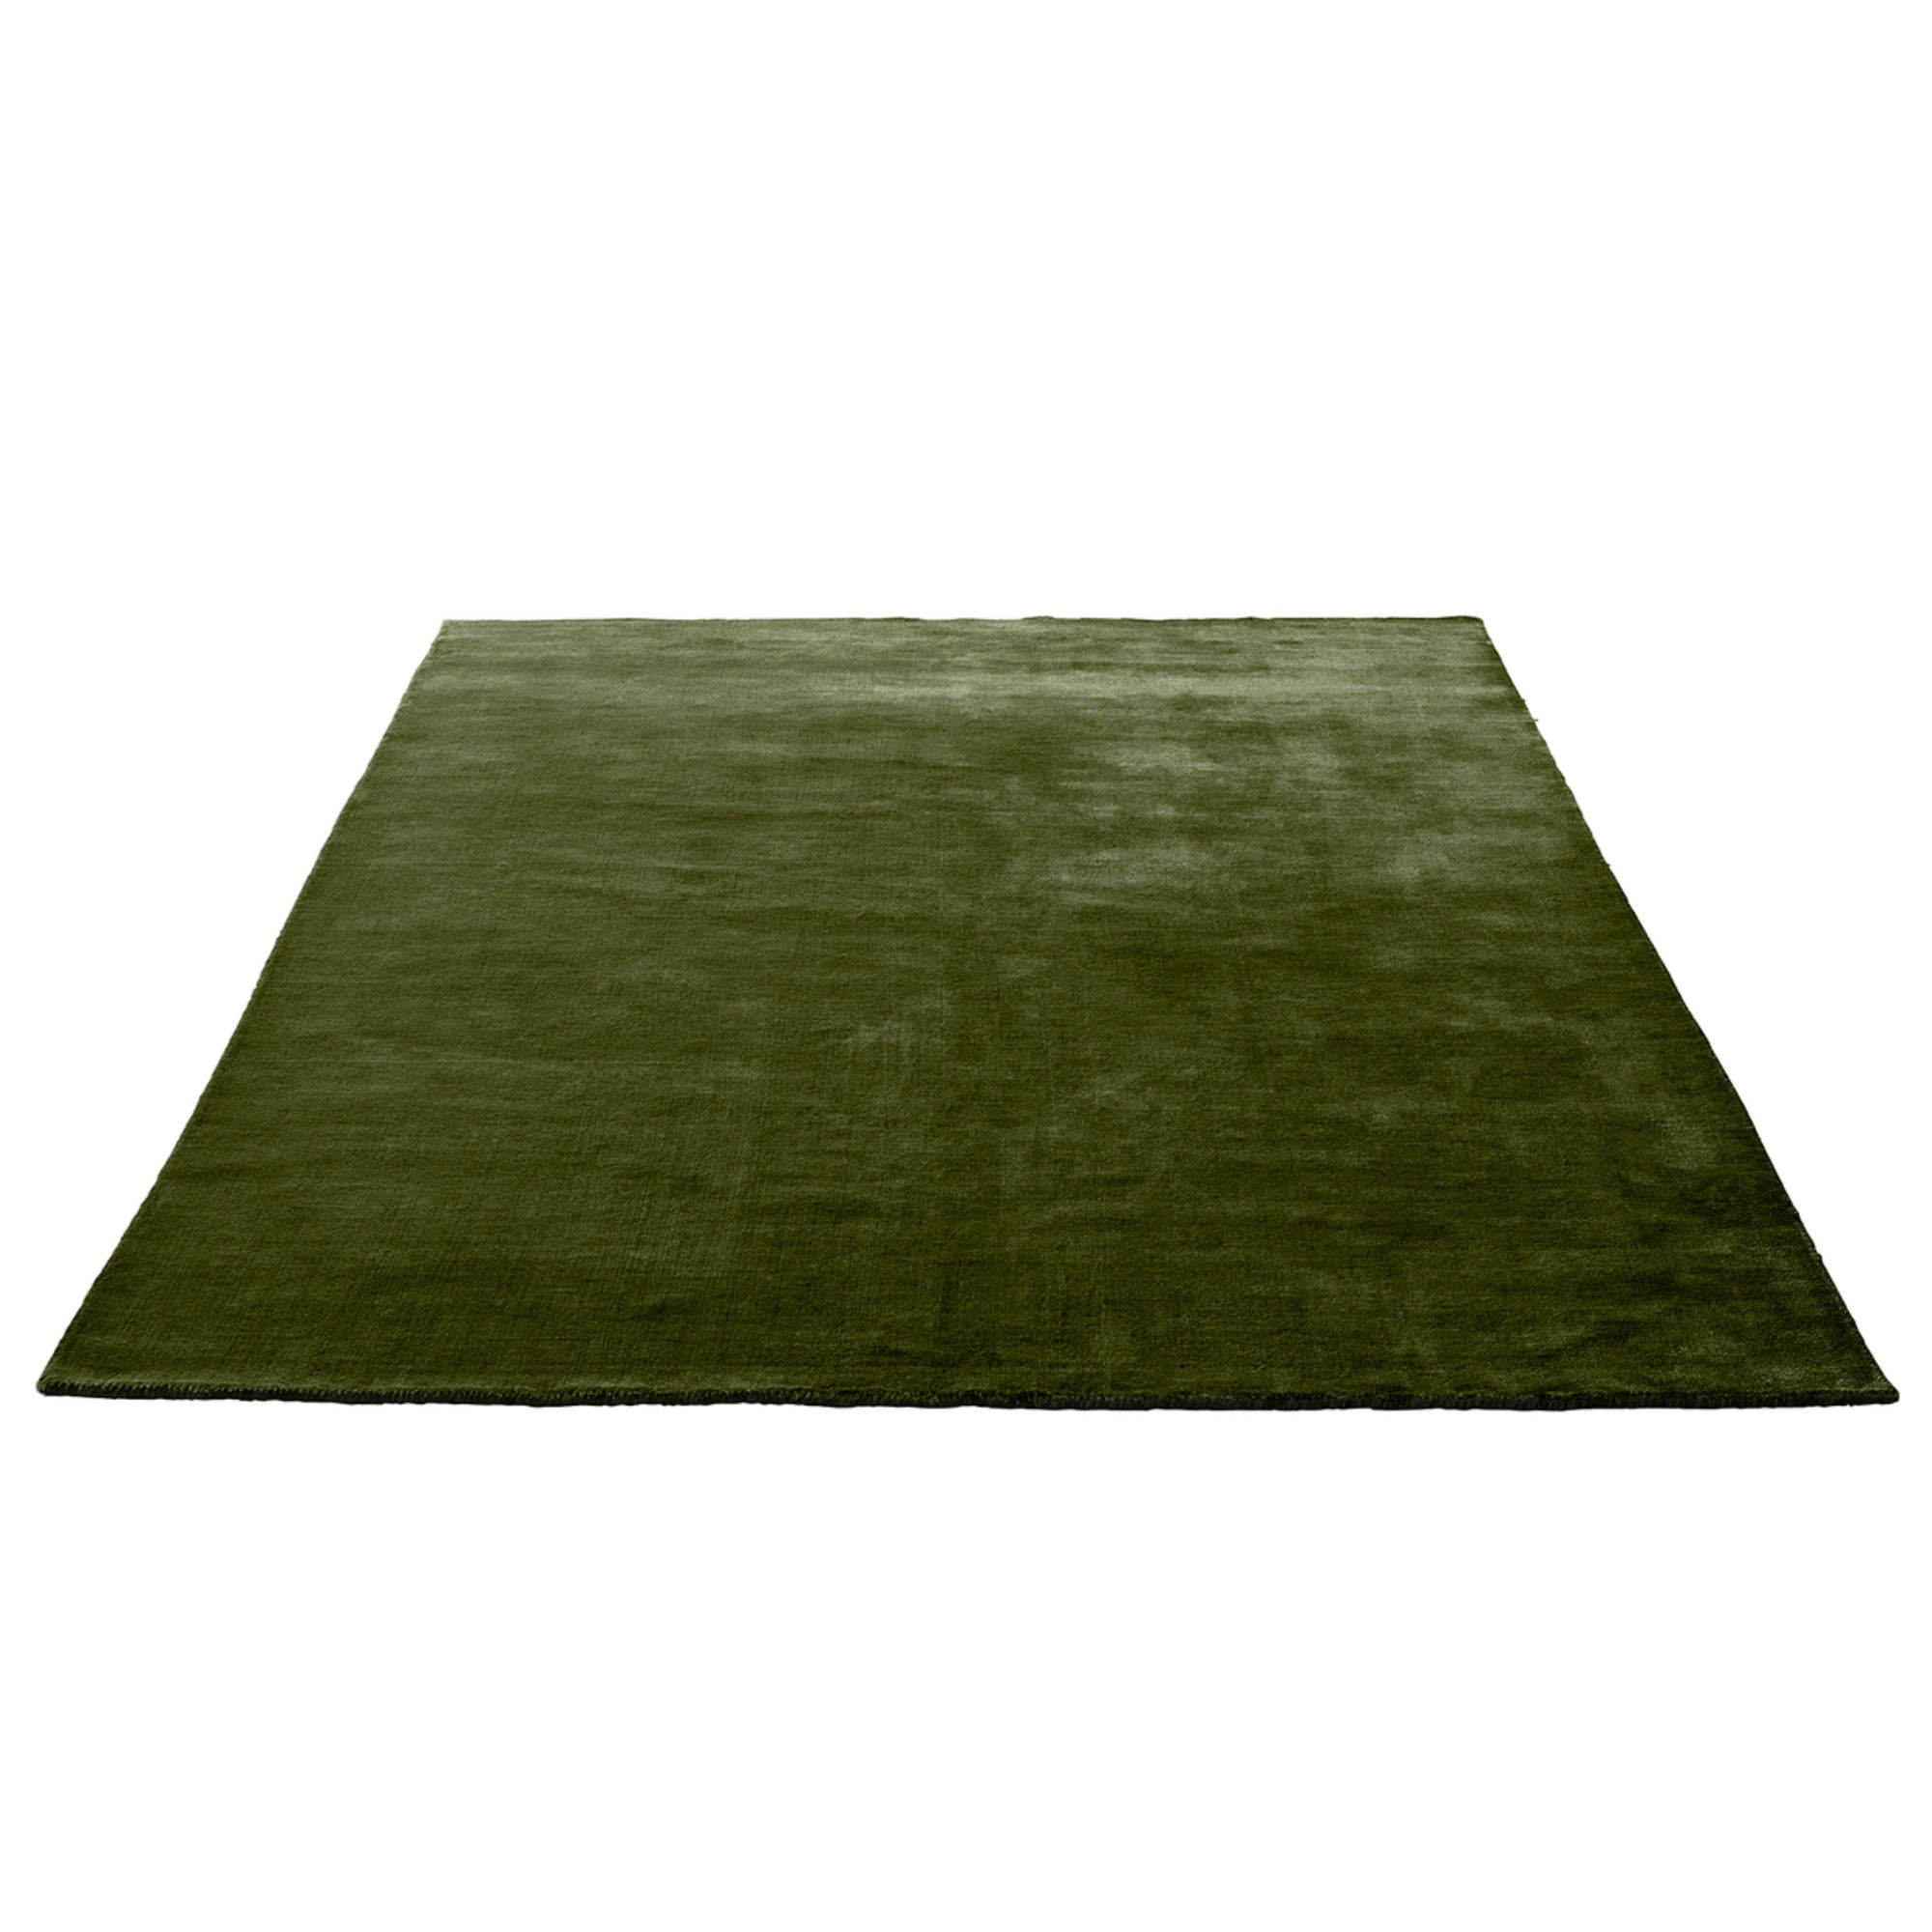 &Tradition AP7 The Moor Rug 200*300, green pine